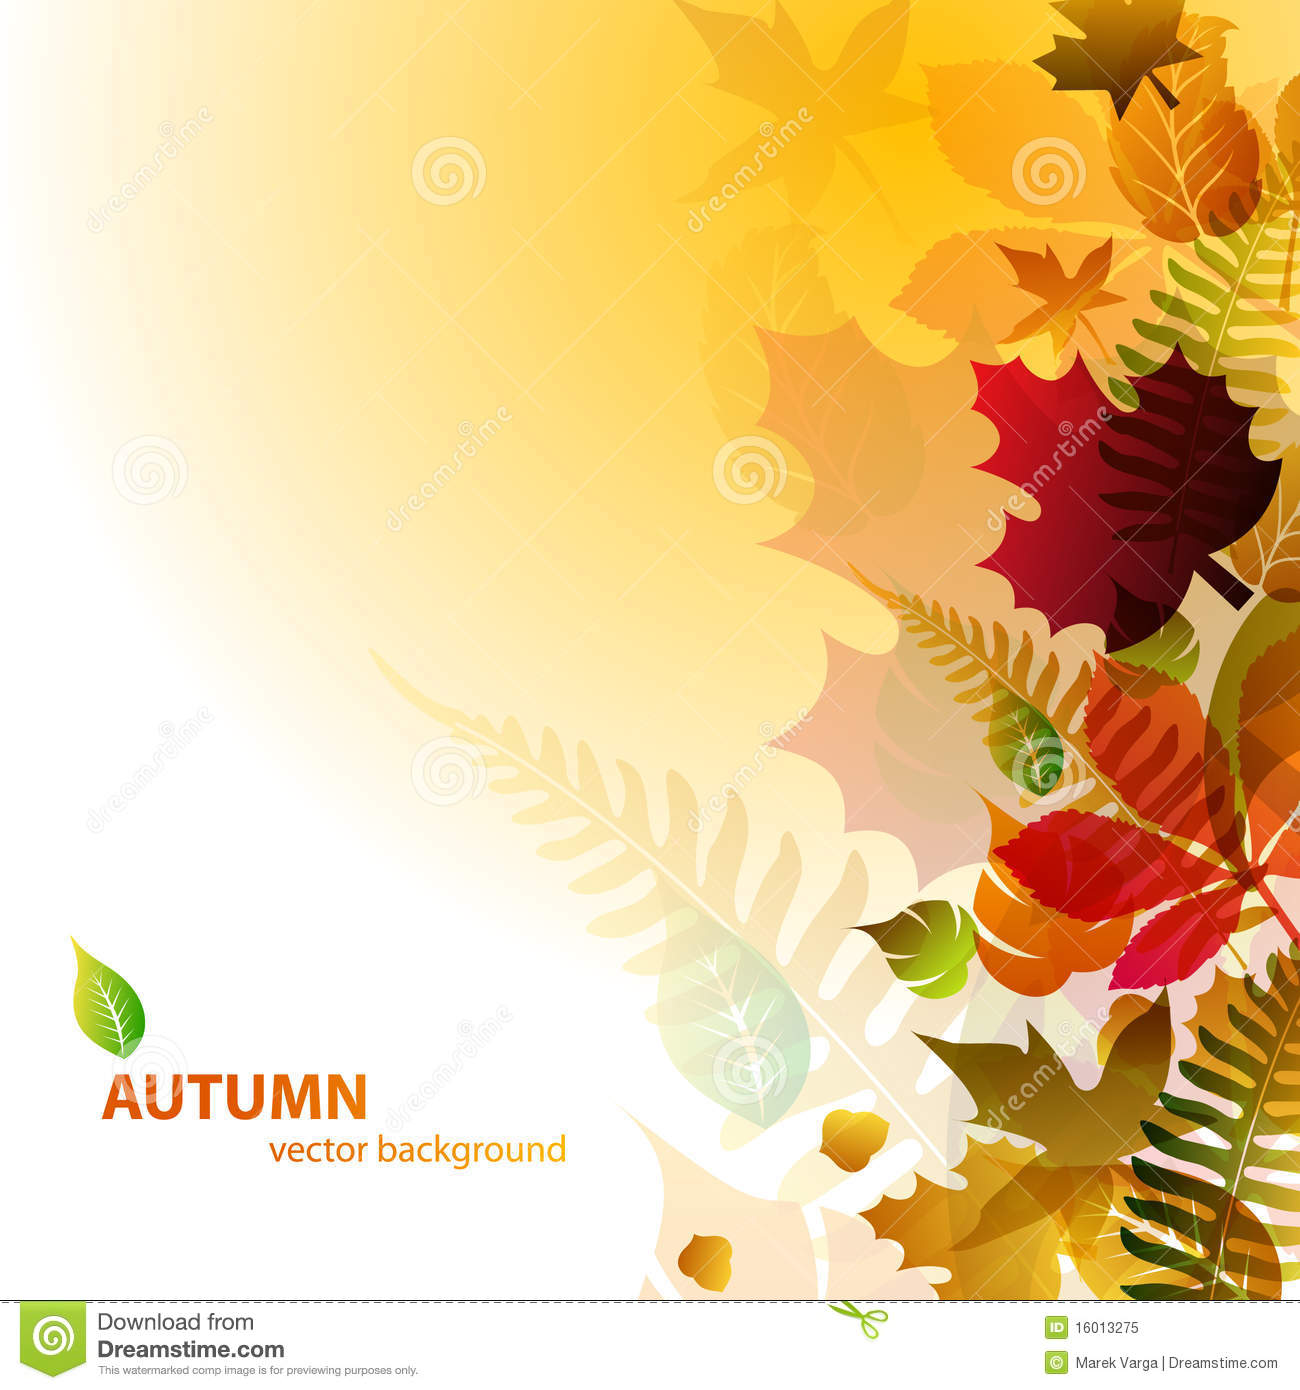 Abstract Background With Autumn Leaves Stock Vector